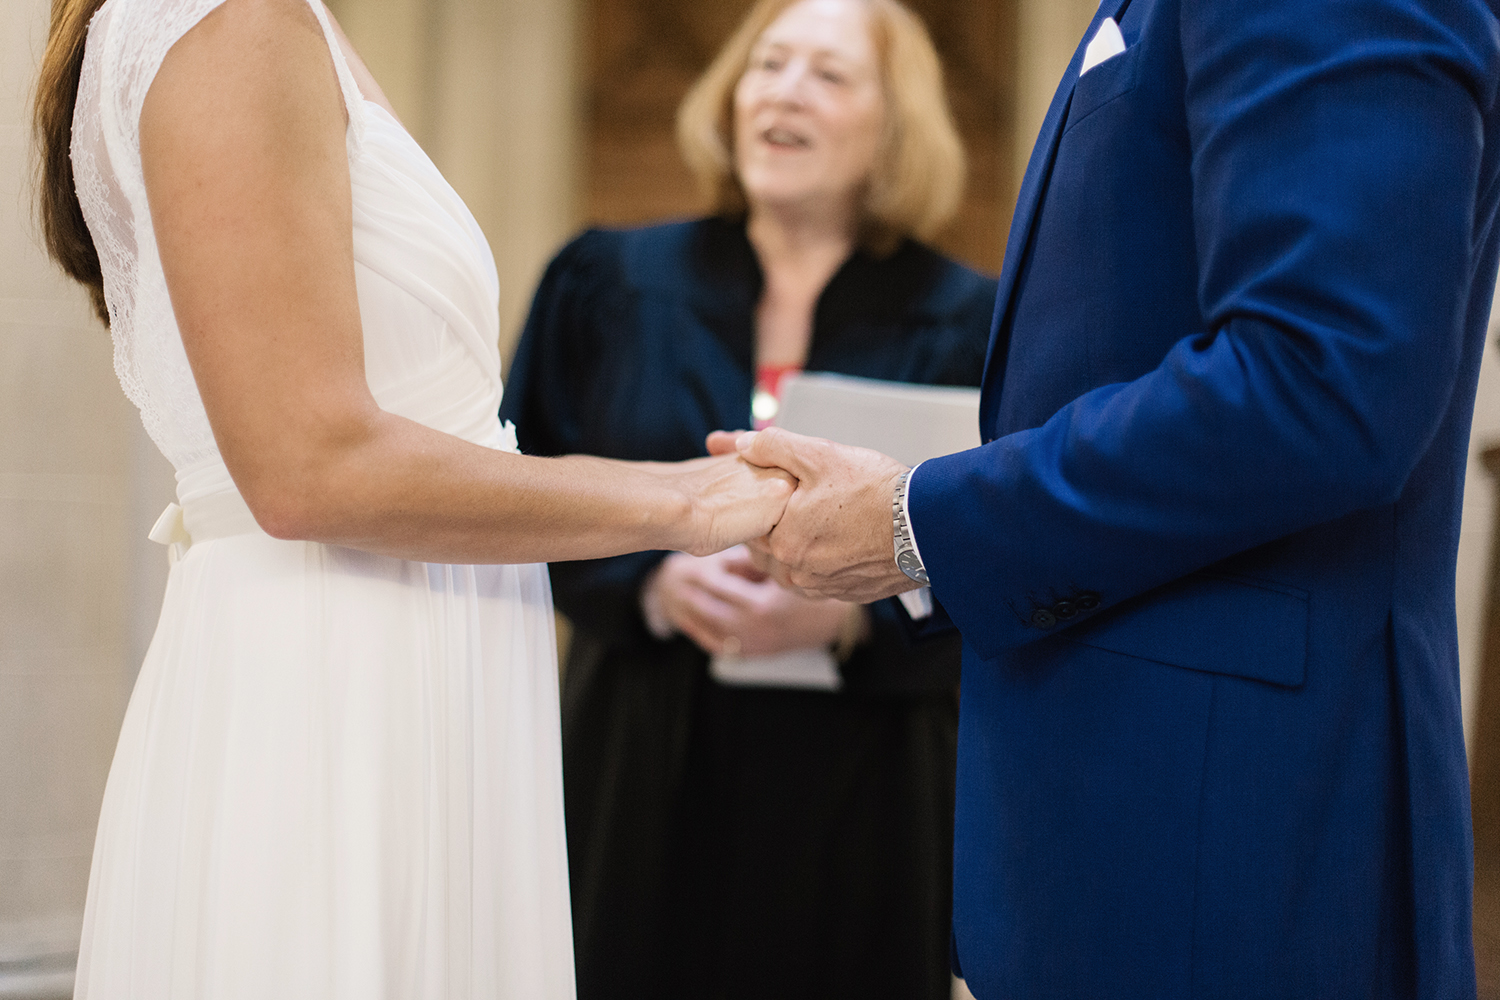 Bride and groom holding hands during their wedding ceremony in San Francisco City Hall.